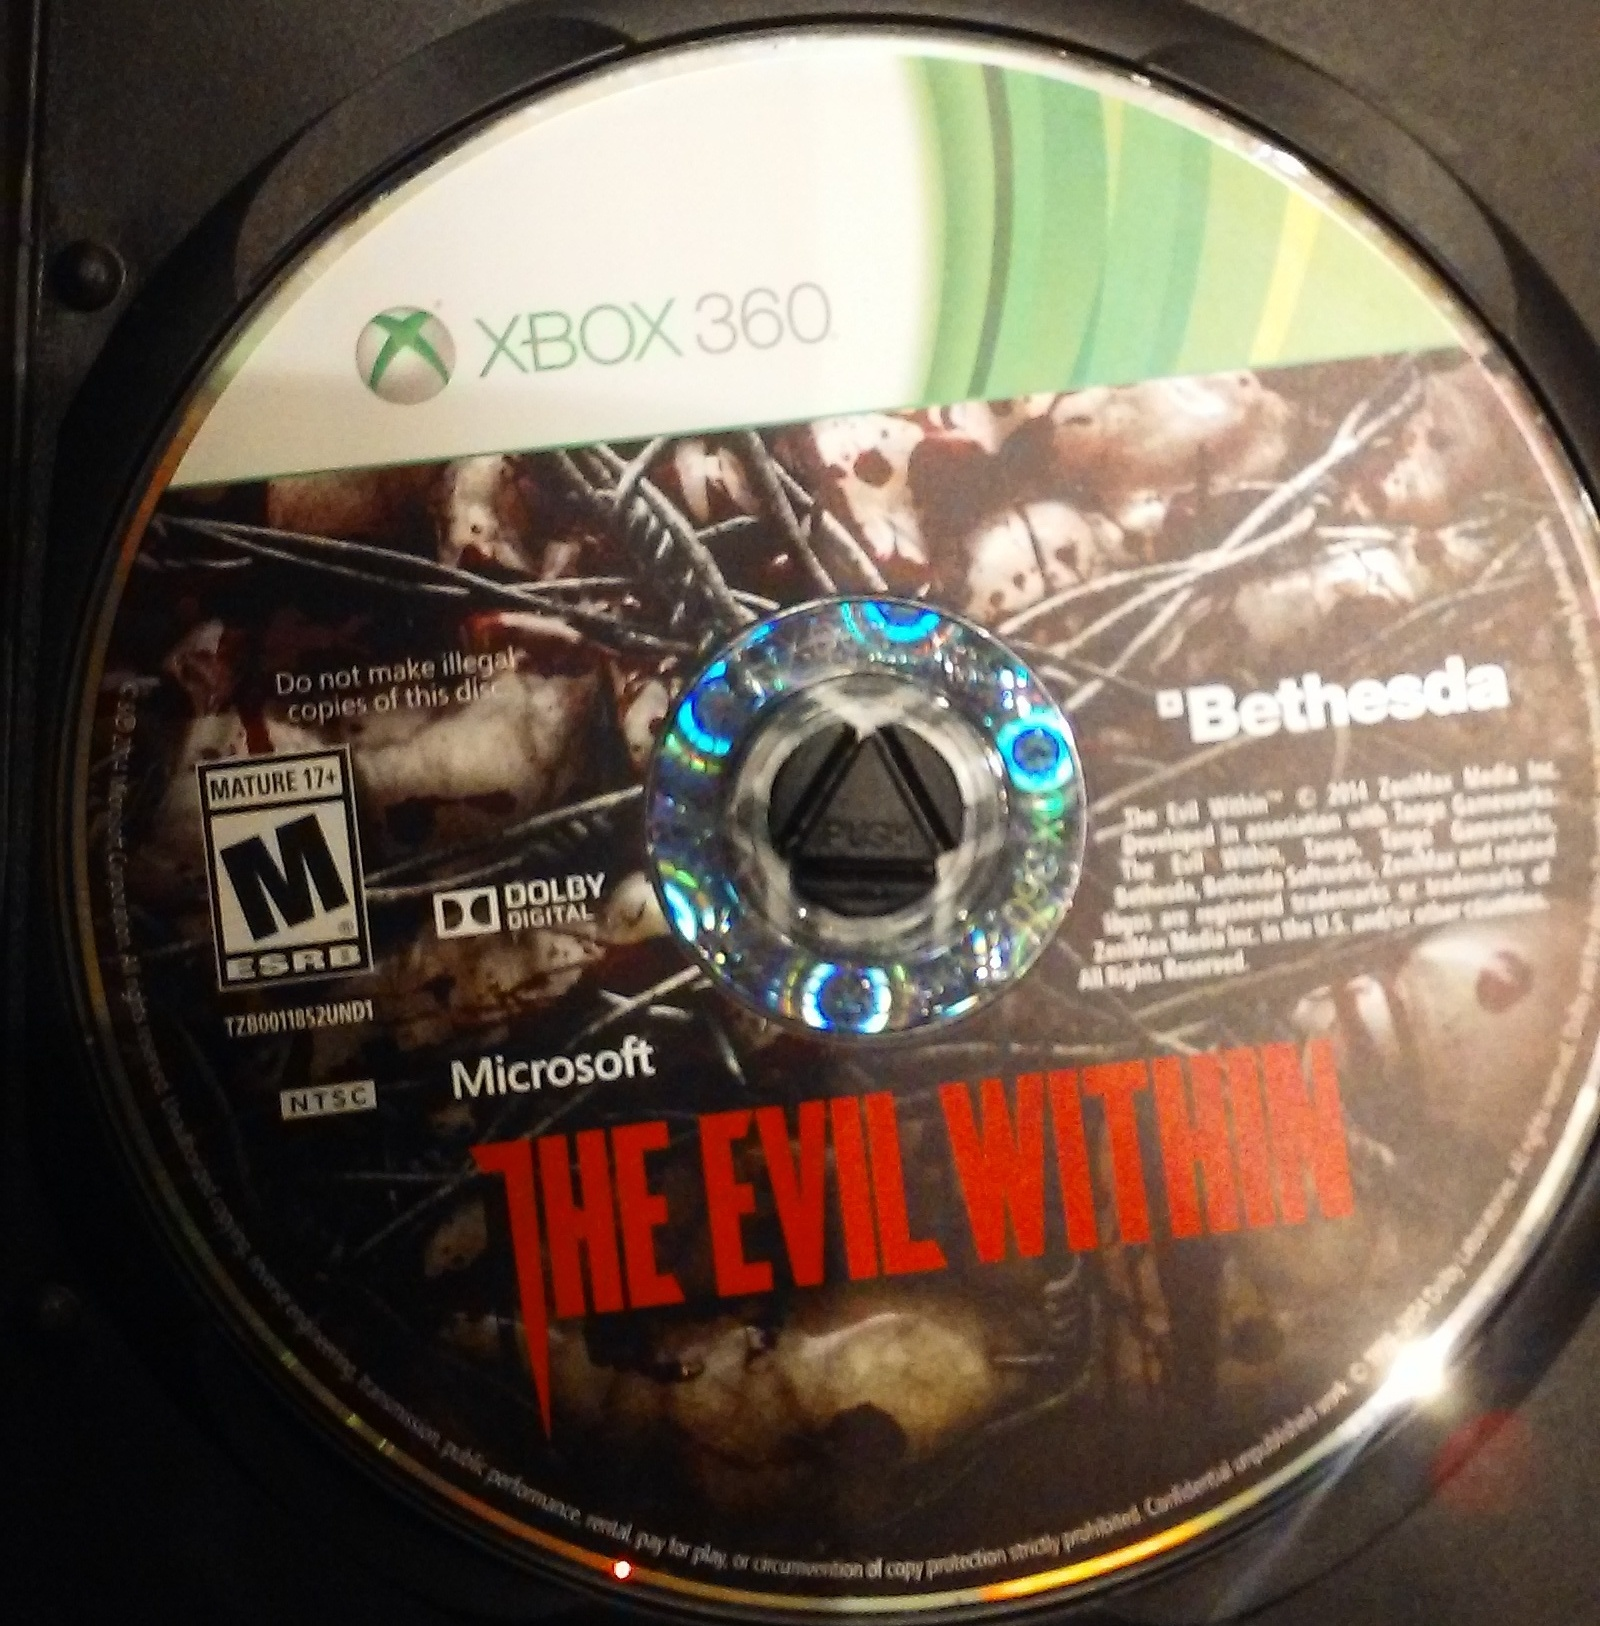 THE EVIL WITHIN: XBOX 360 GAME